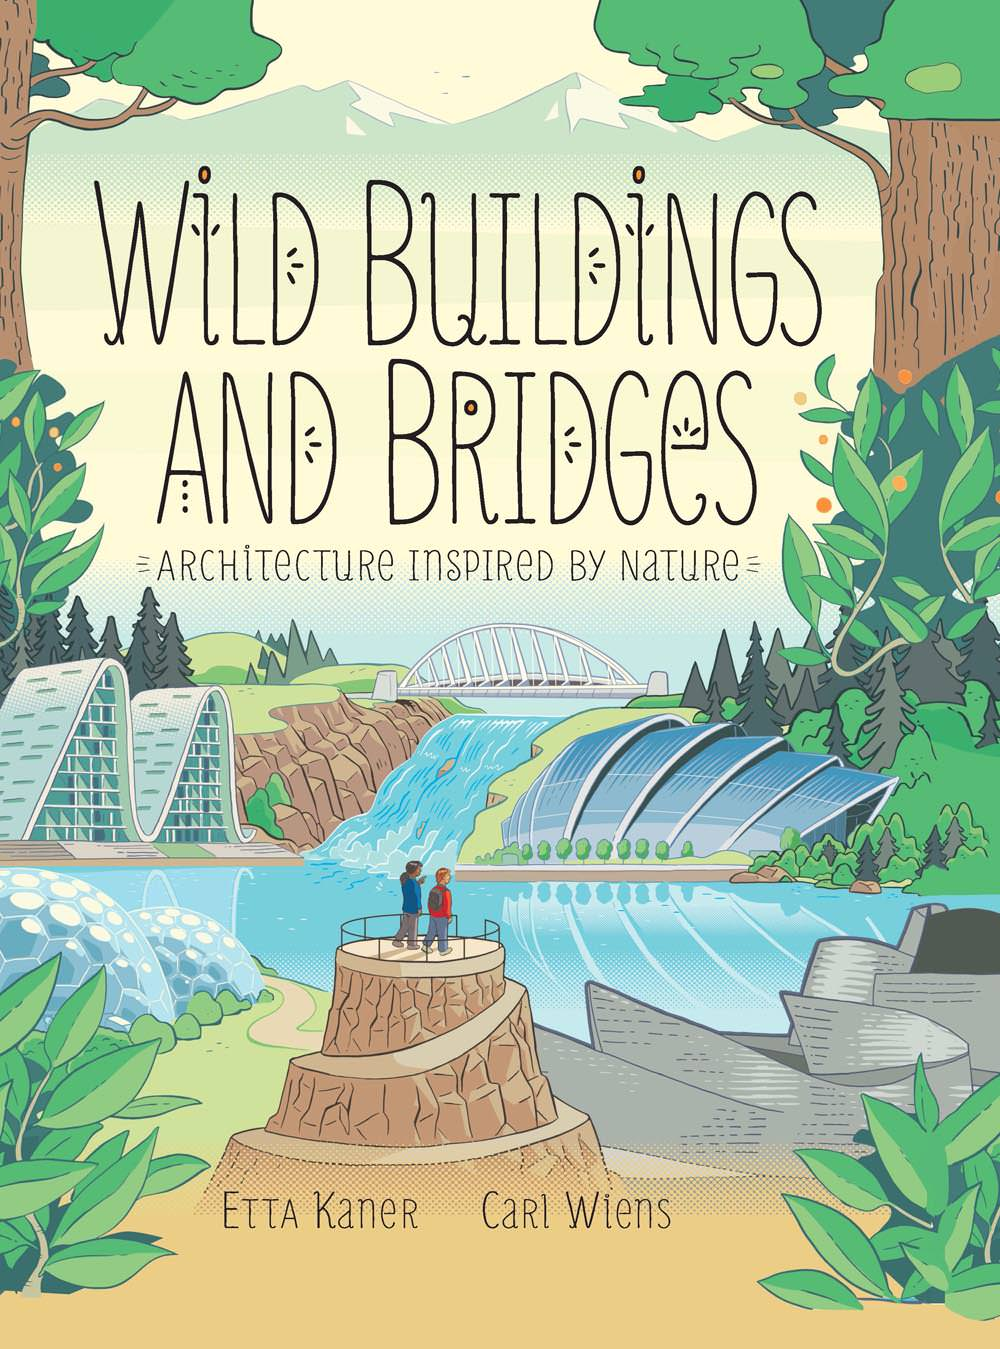 Wild Buildings And Bridges - CW690